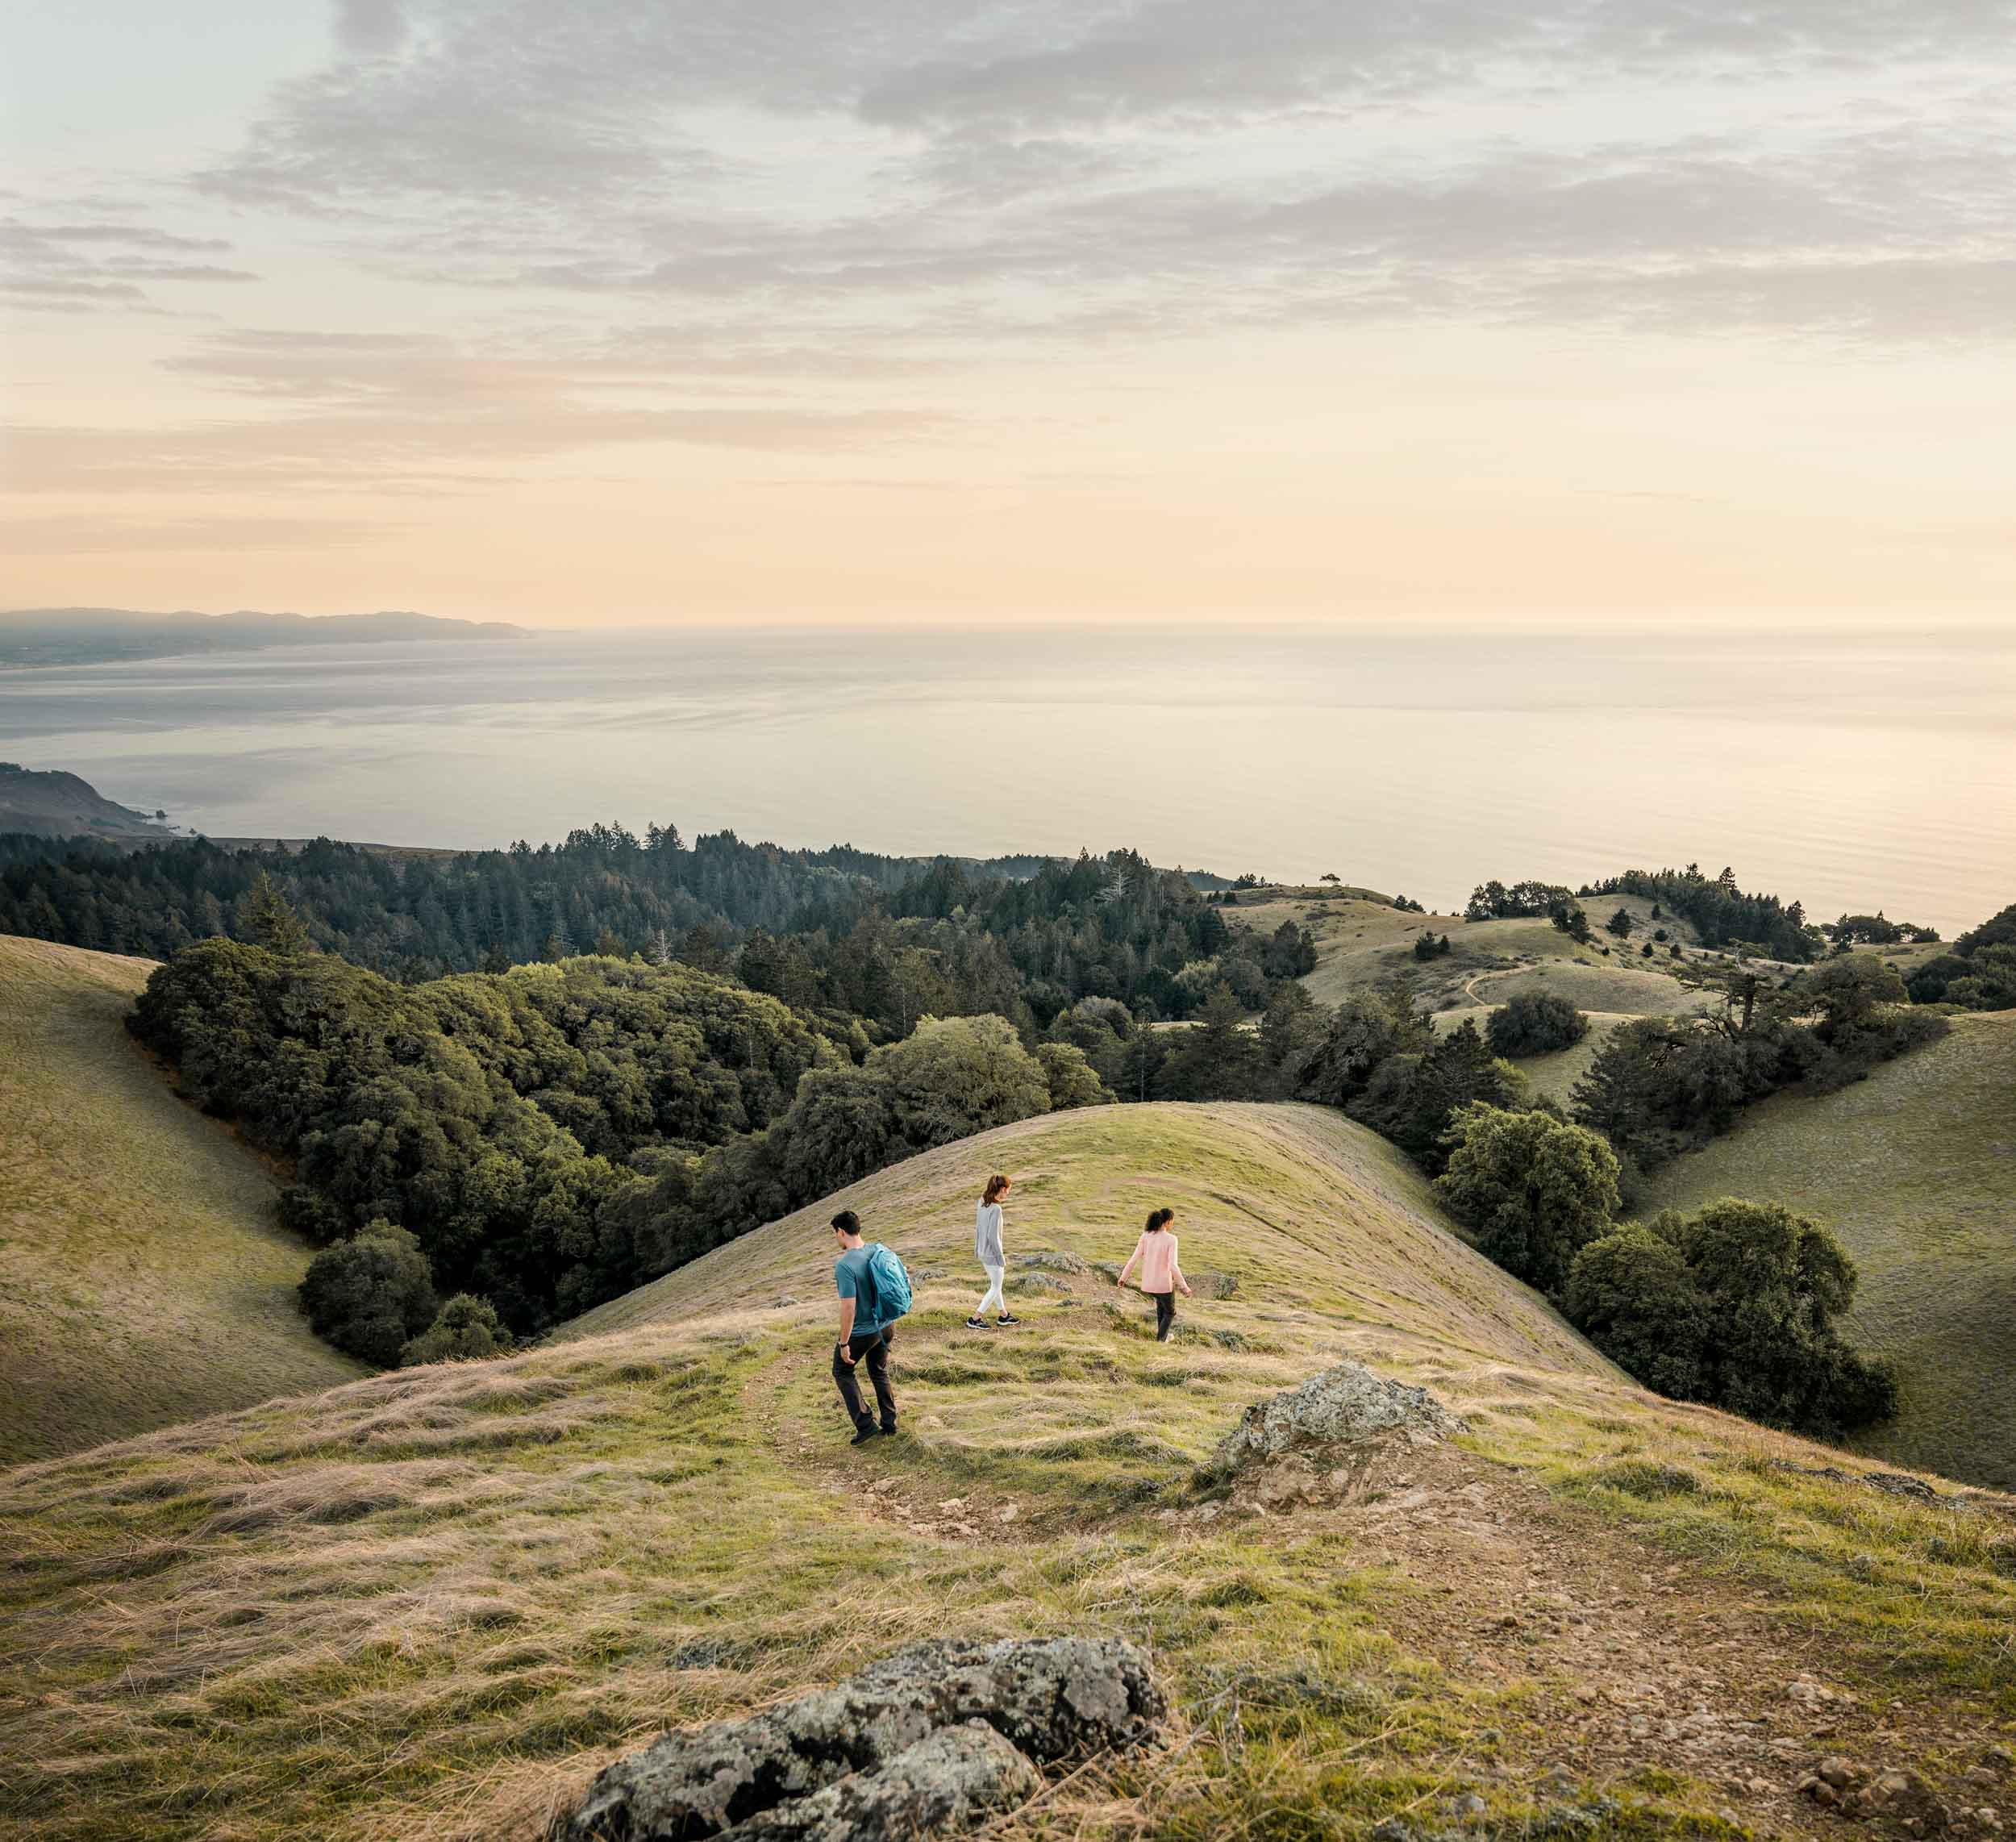 Three friends walk down a winding path high above the Pacific Ocean